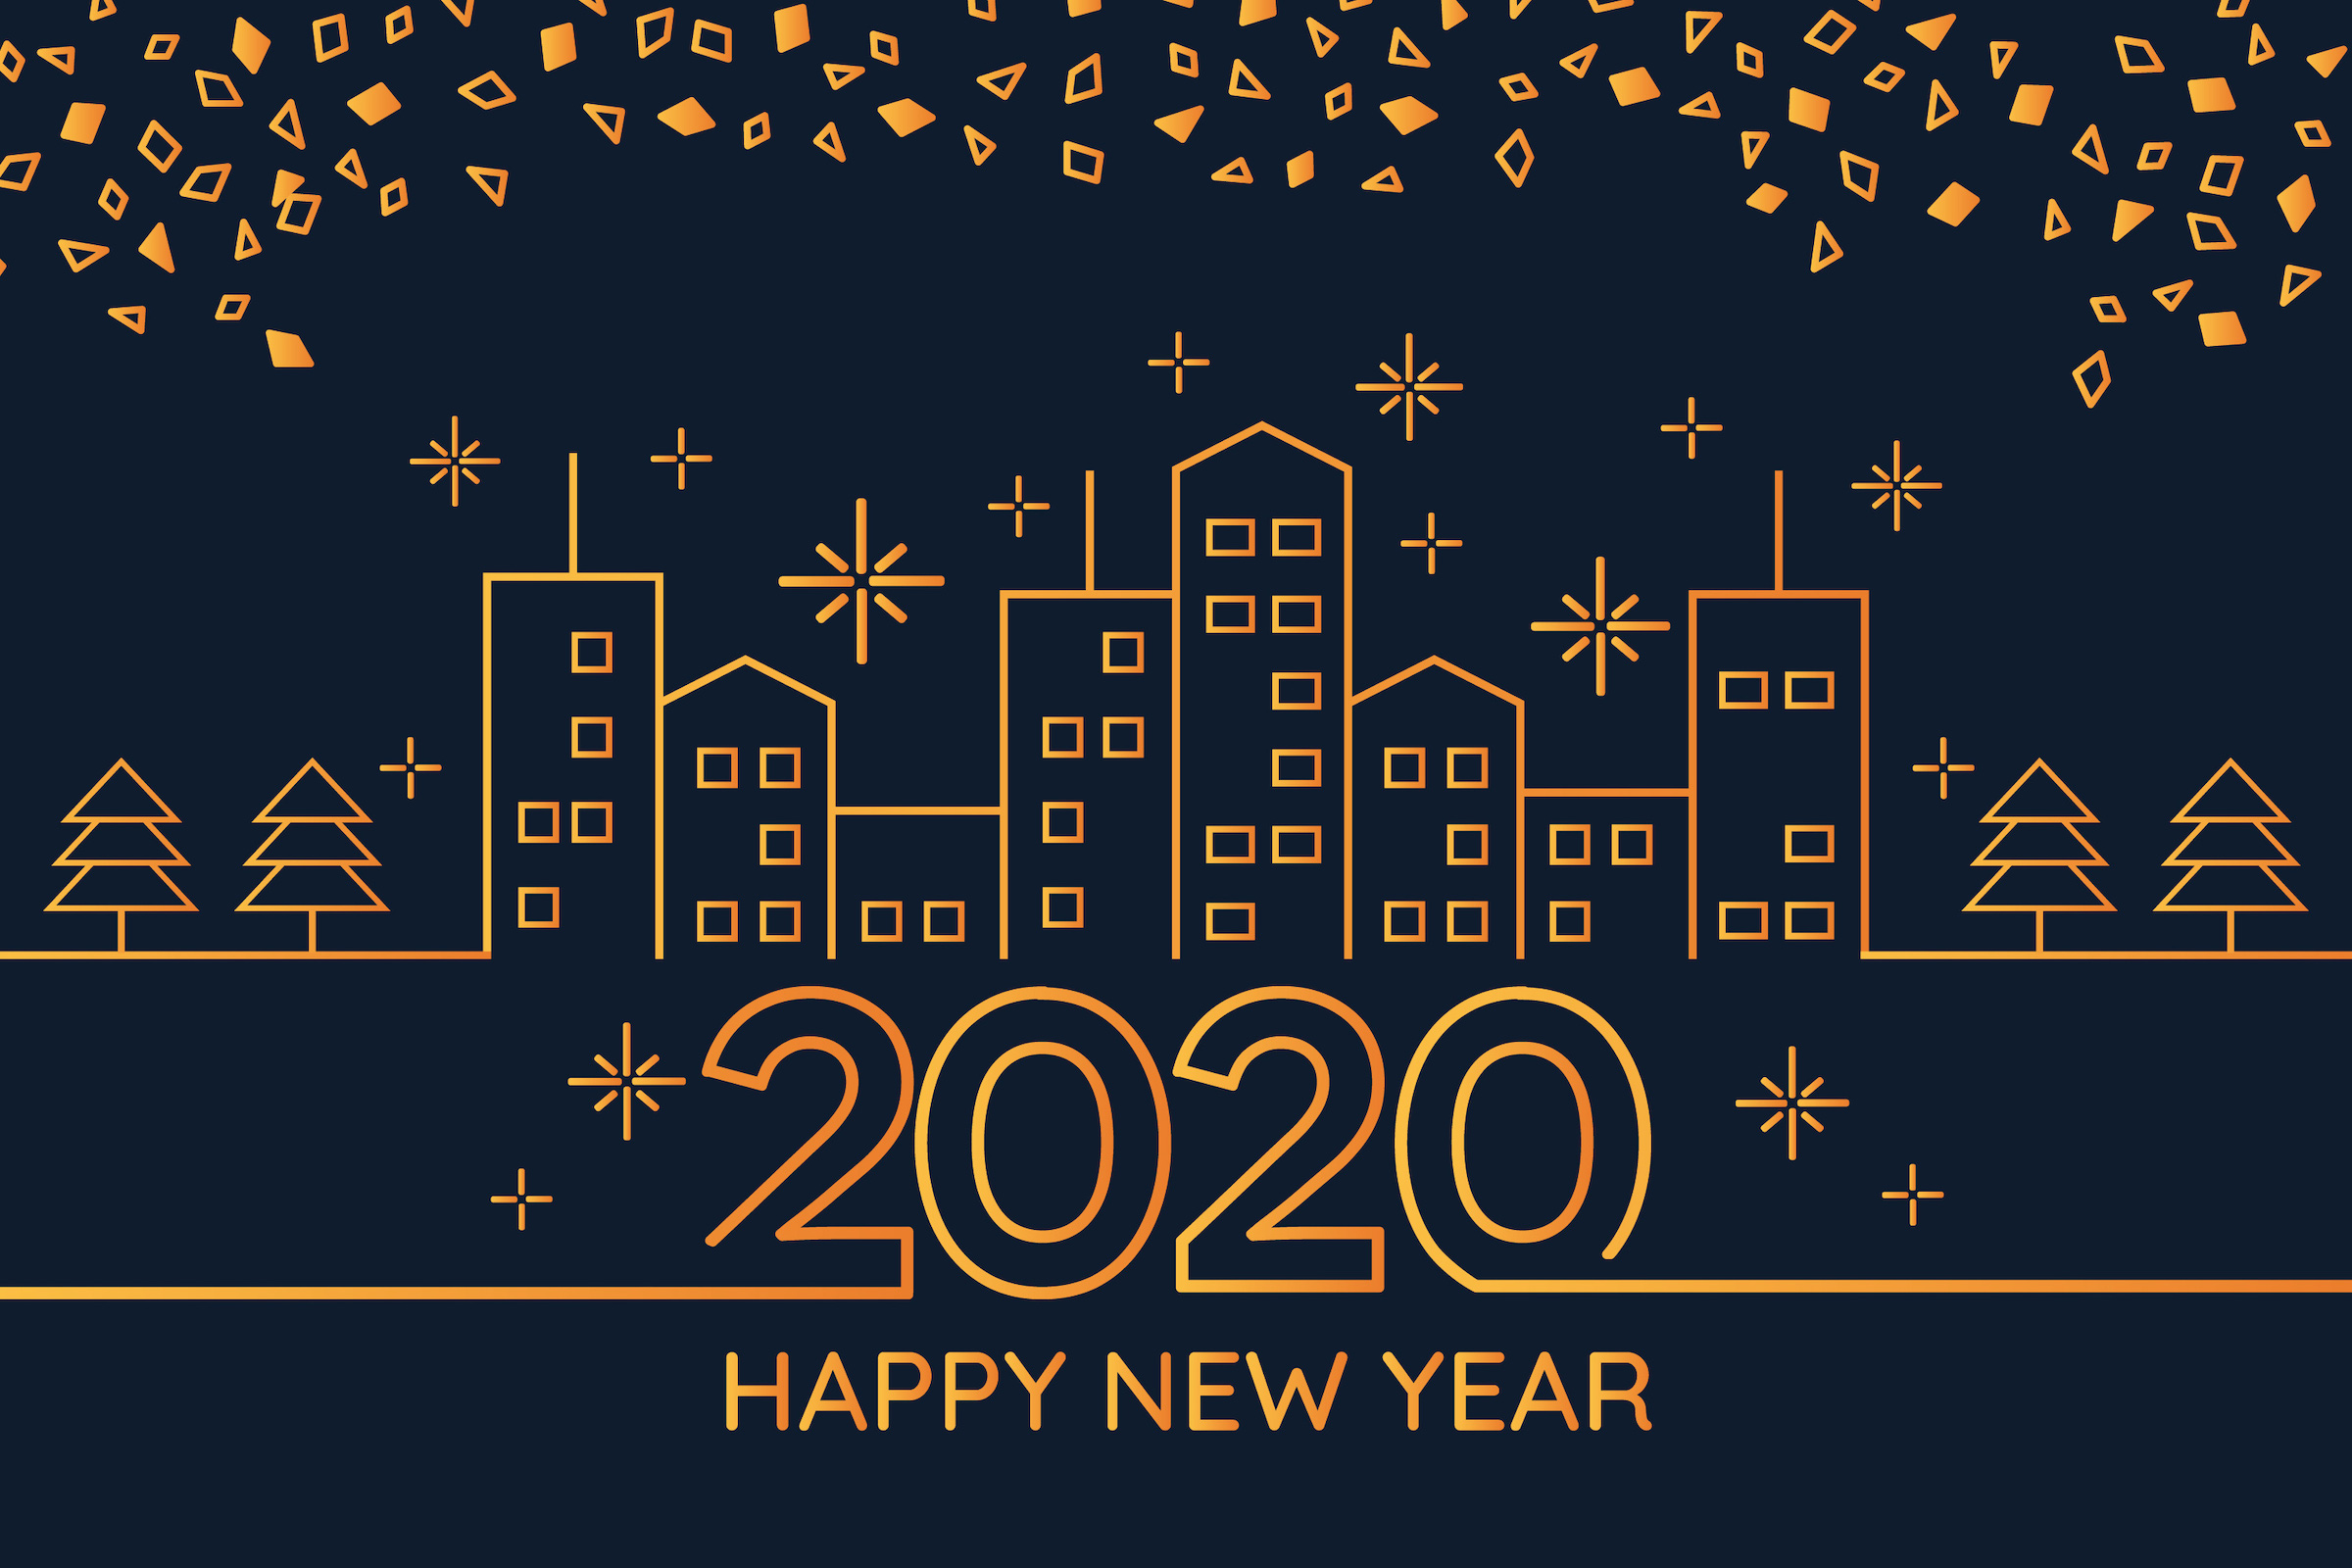 New Year 2020 Background Concept Outline Style